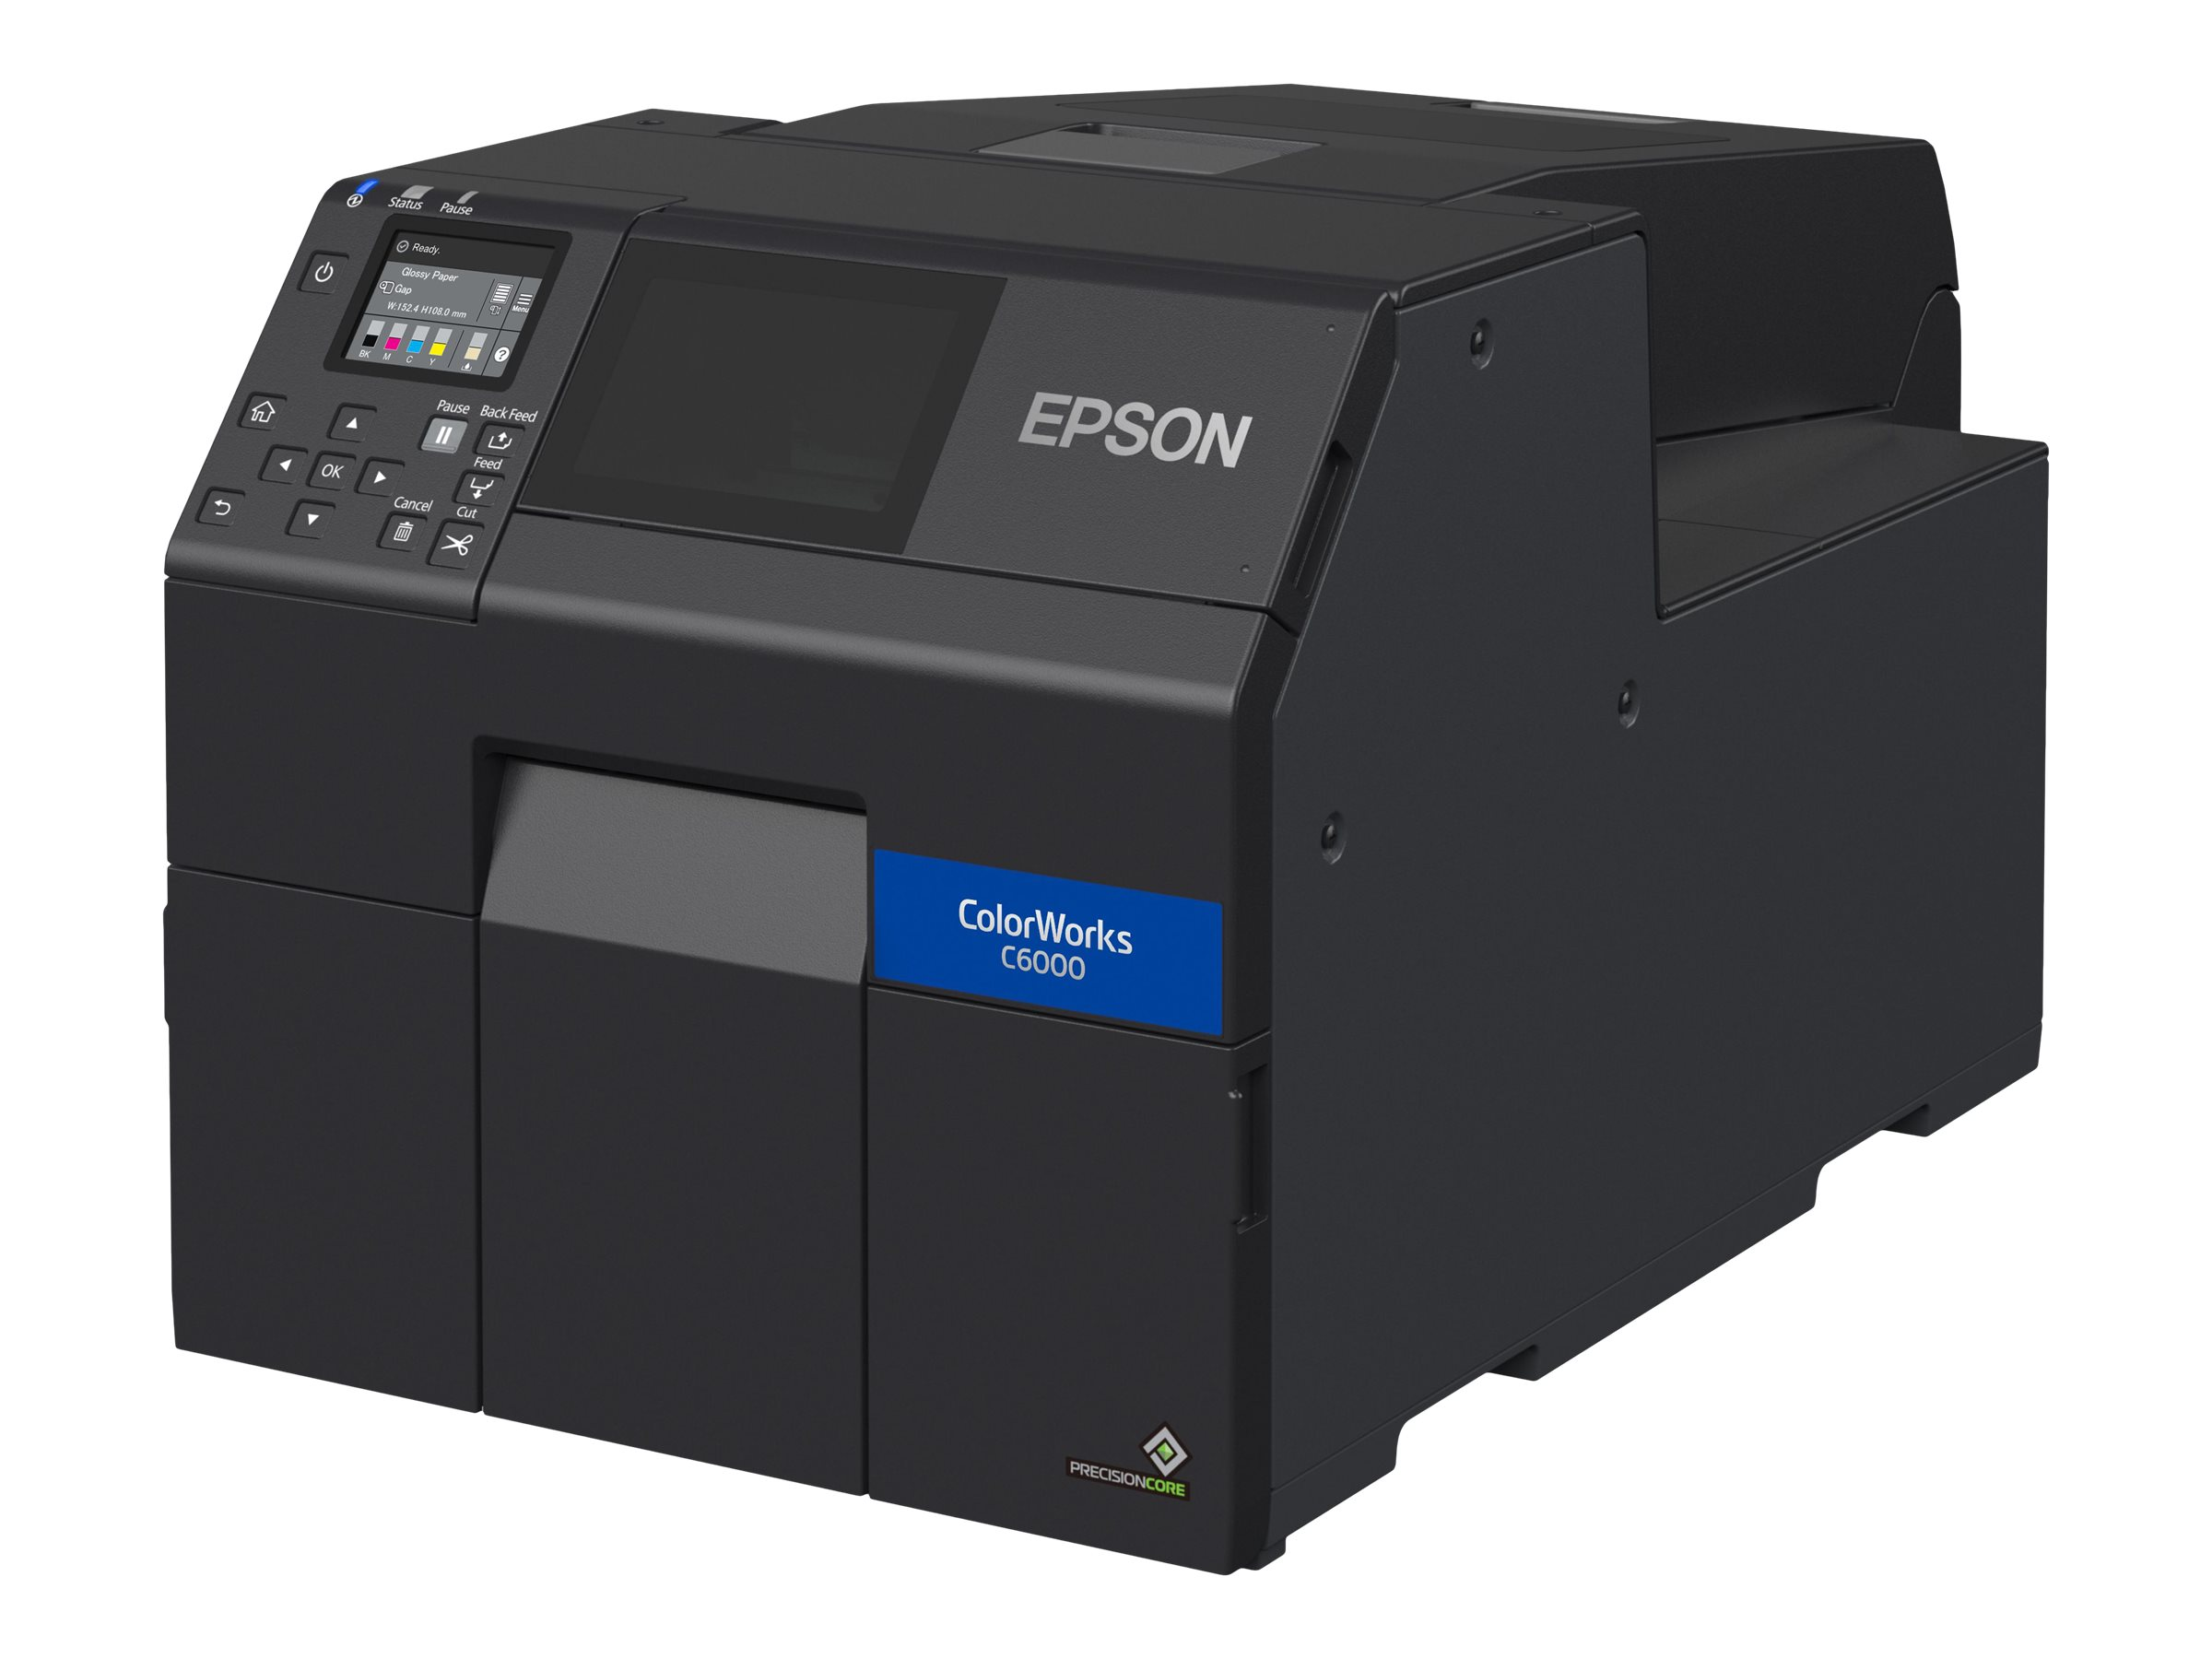 Epson ColorWorks CW-C6000A - label printer - color - ink-jet